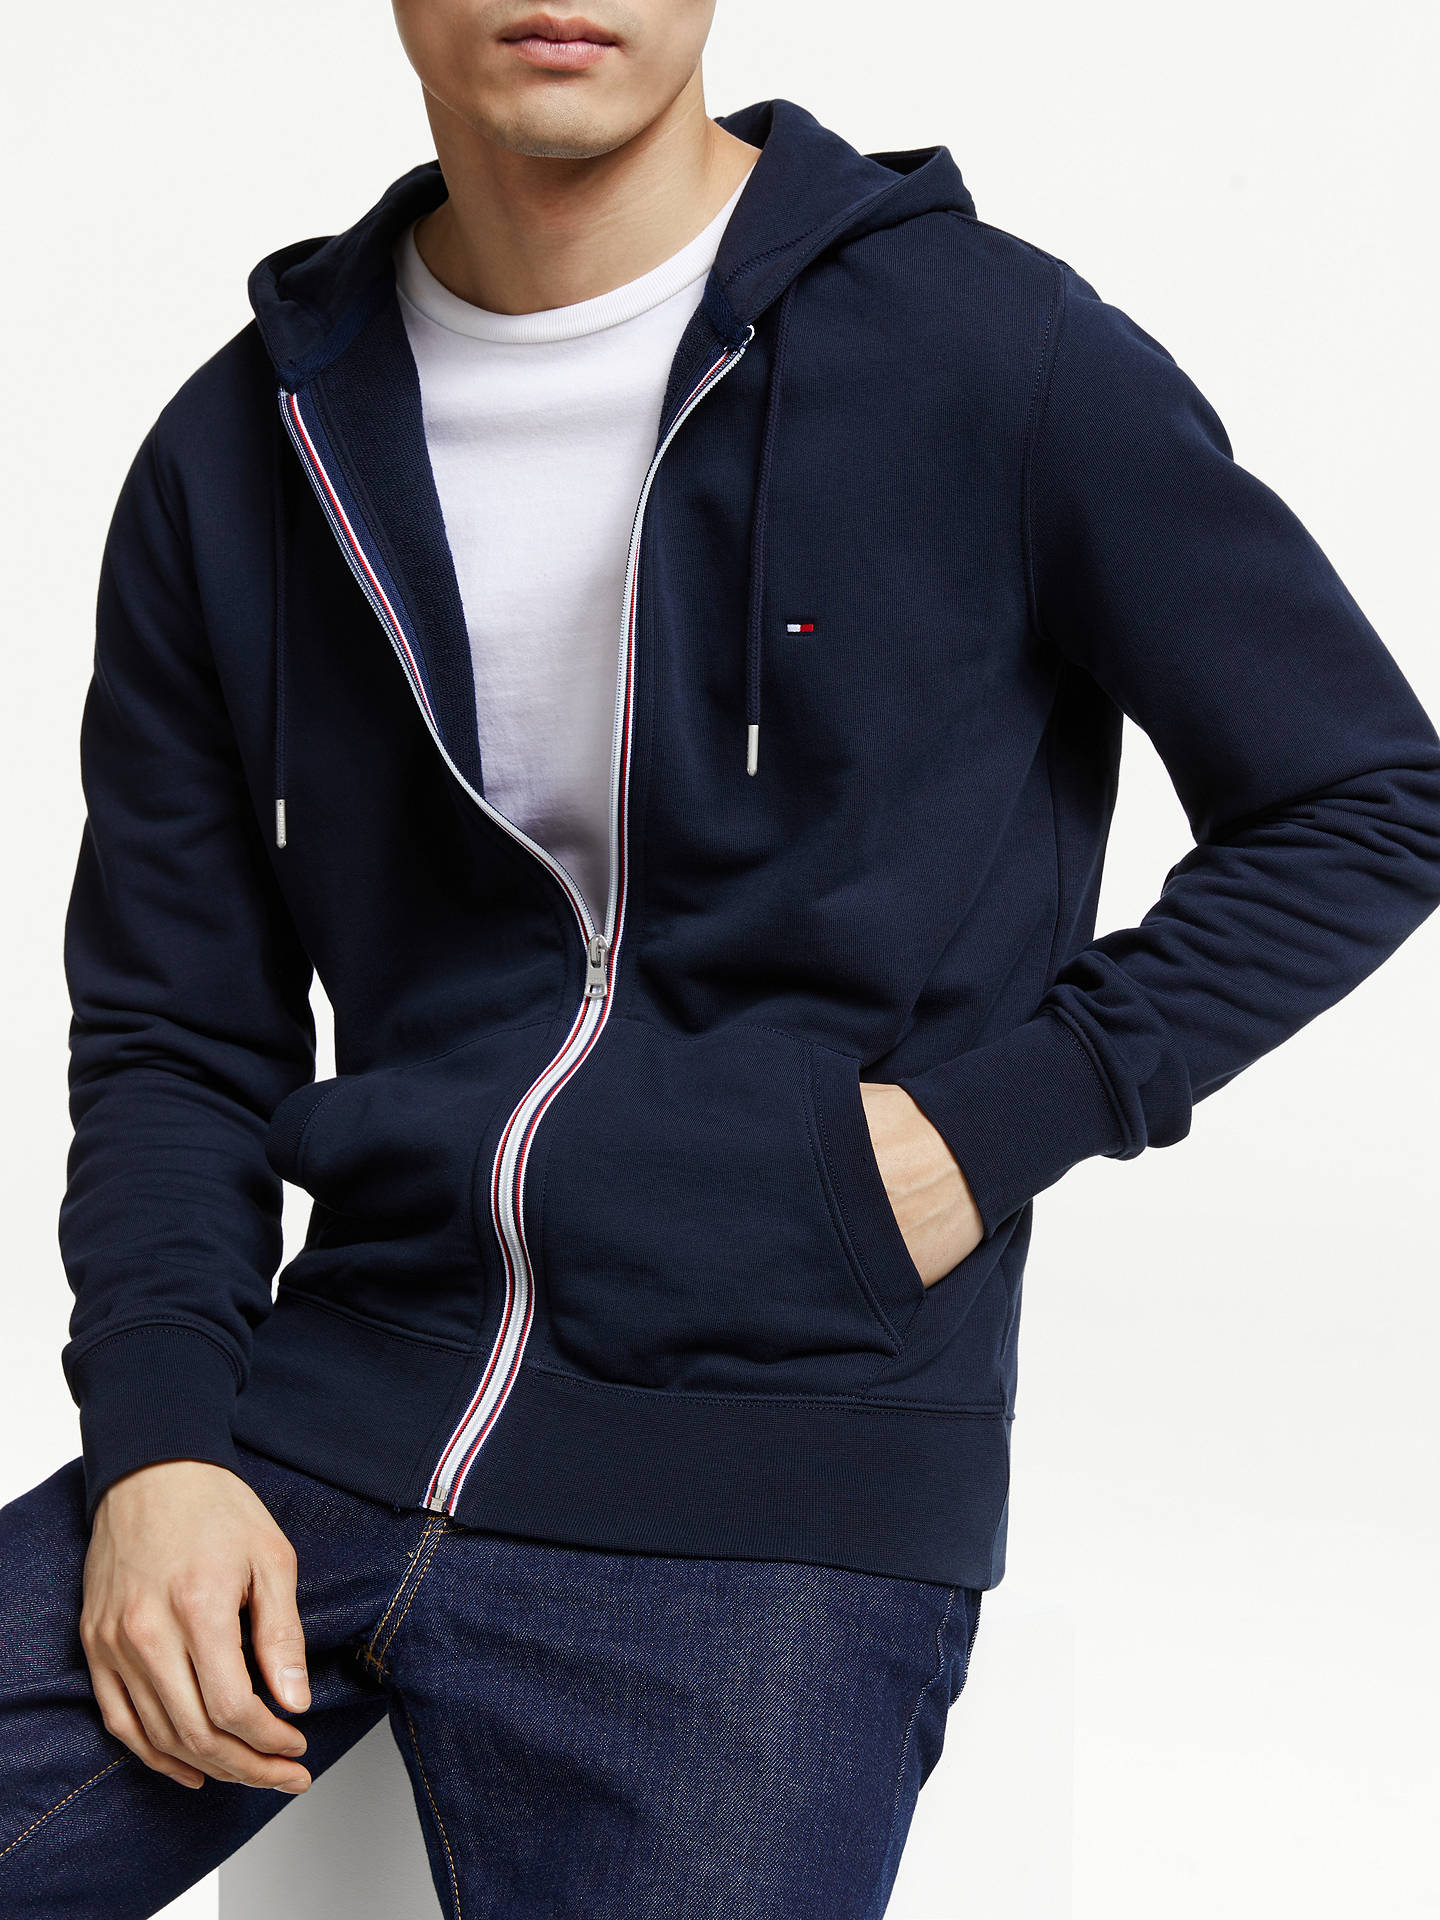 6862973e4307c Buy Tommy Hilfiger Signature Tape Zip Hoodie, Sky Captain, L Online at  johnlewis.